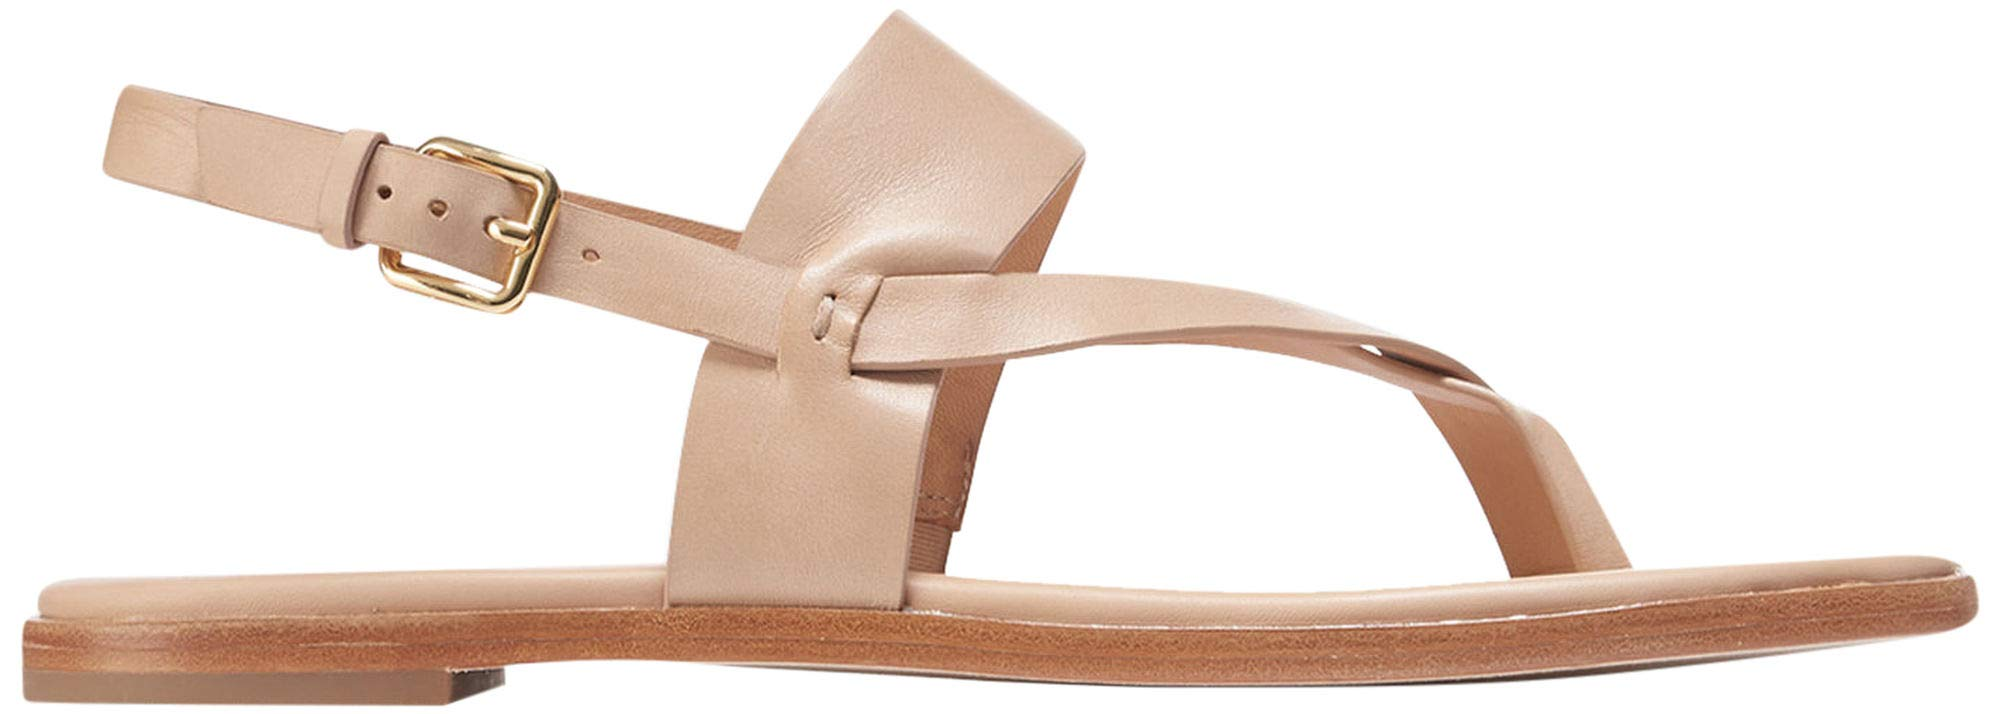 2c568b57721 Galleon - Cole Haan Women s Anica Thong Sandal Flat